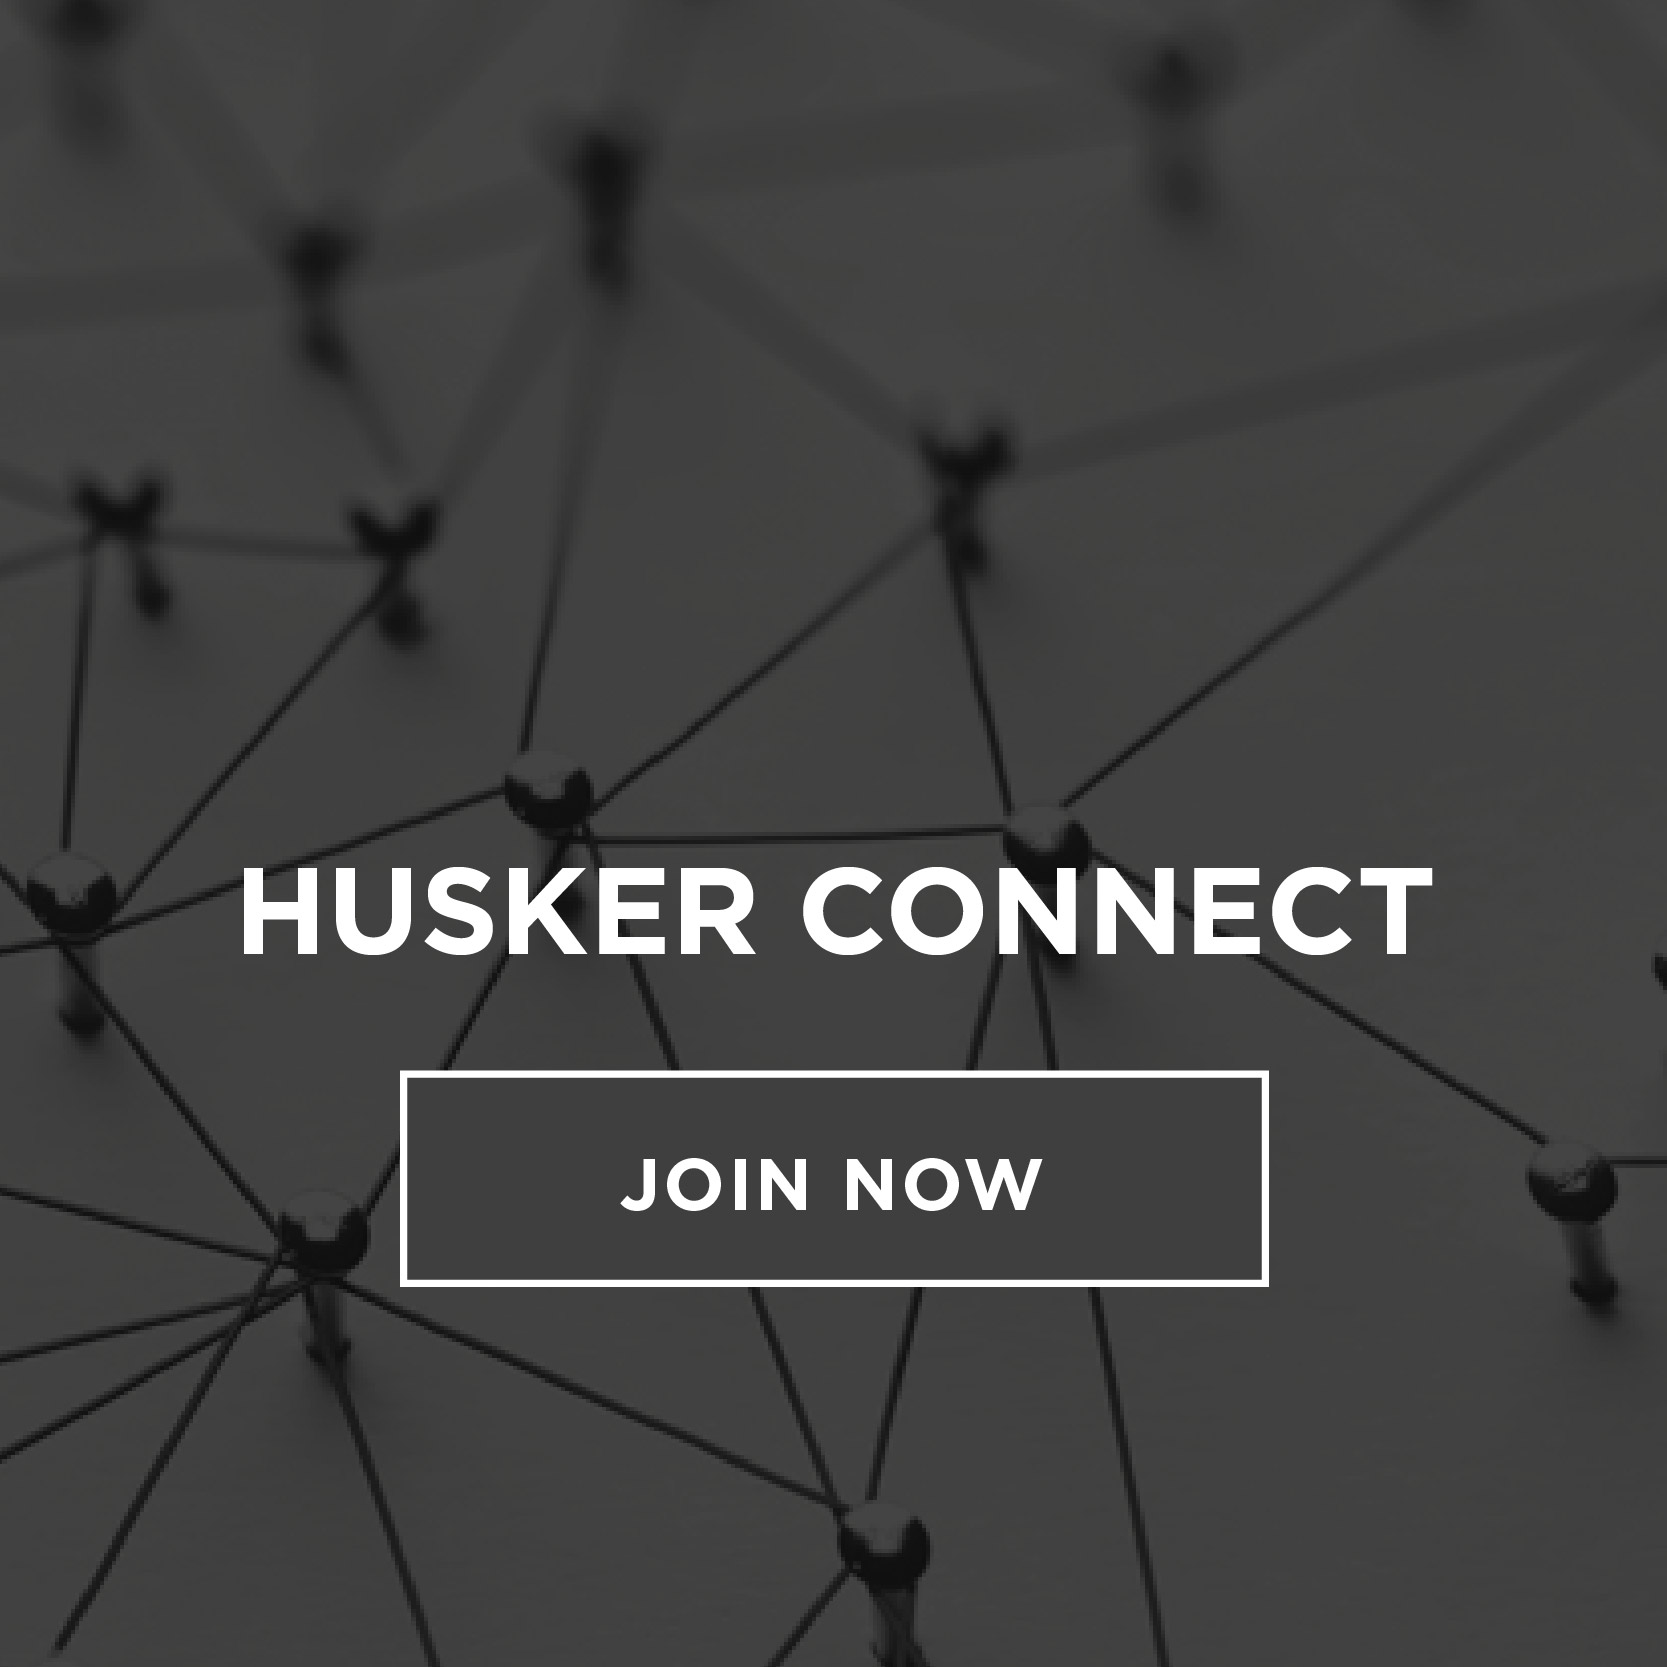 Join Husker Connect!